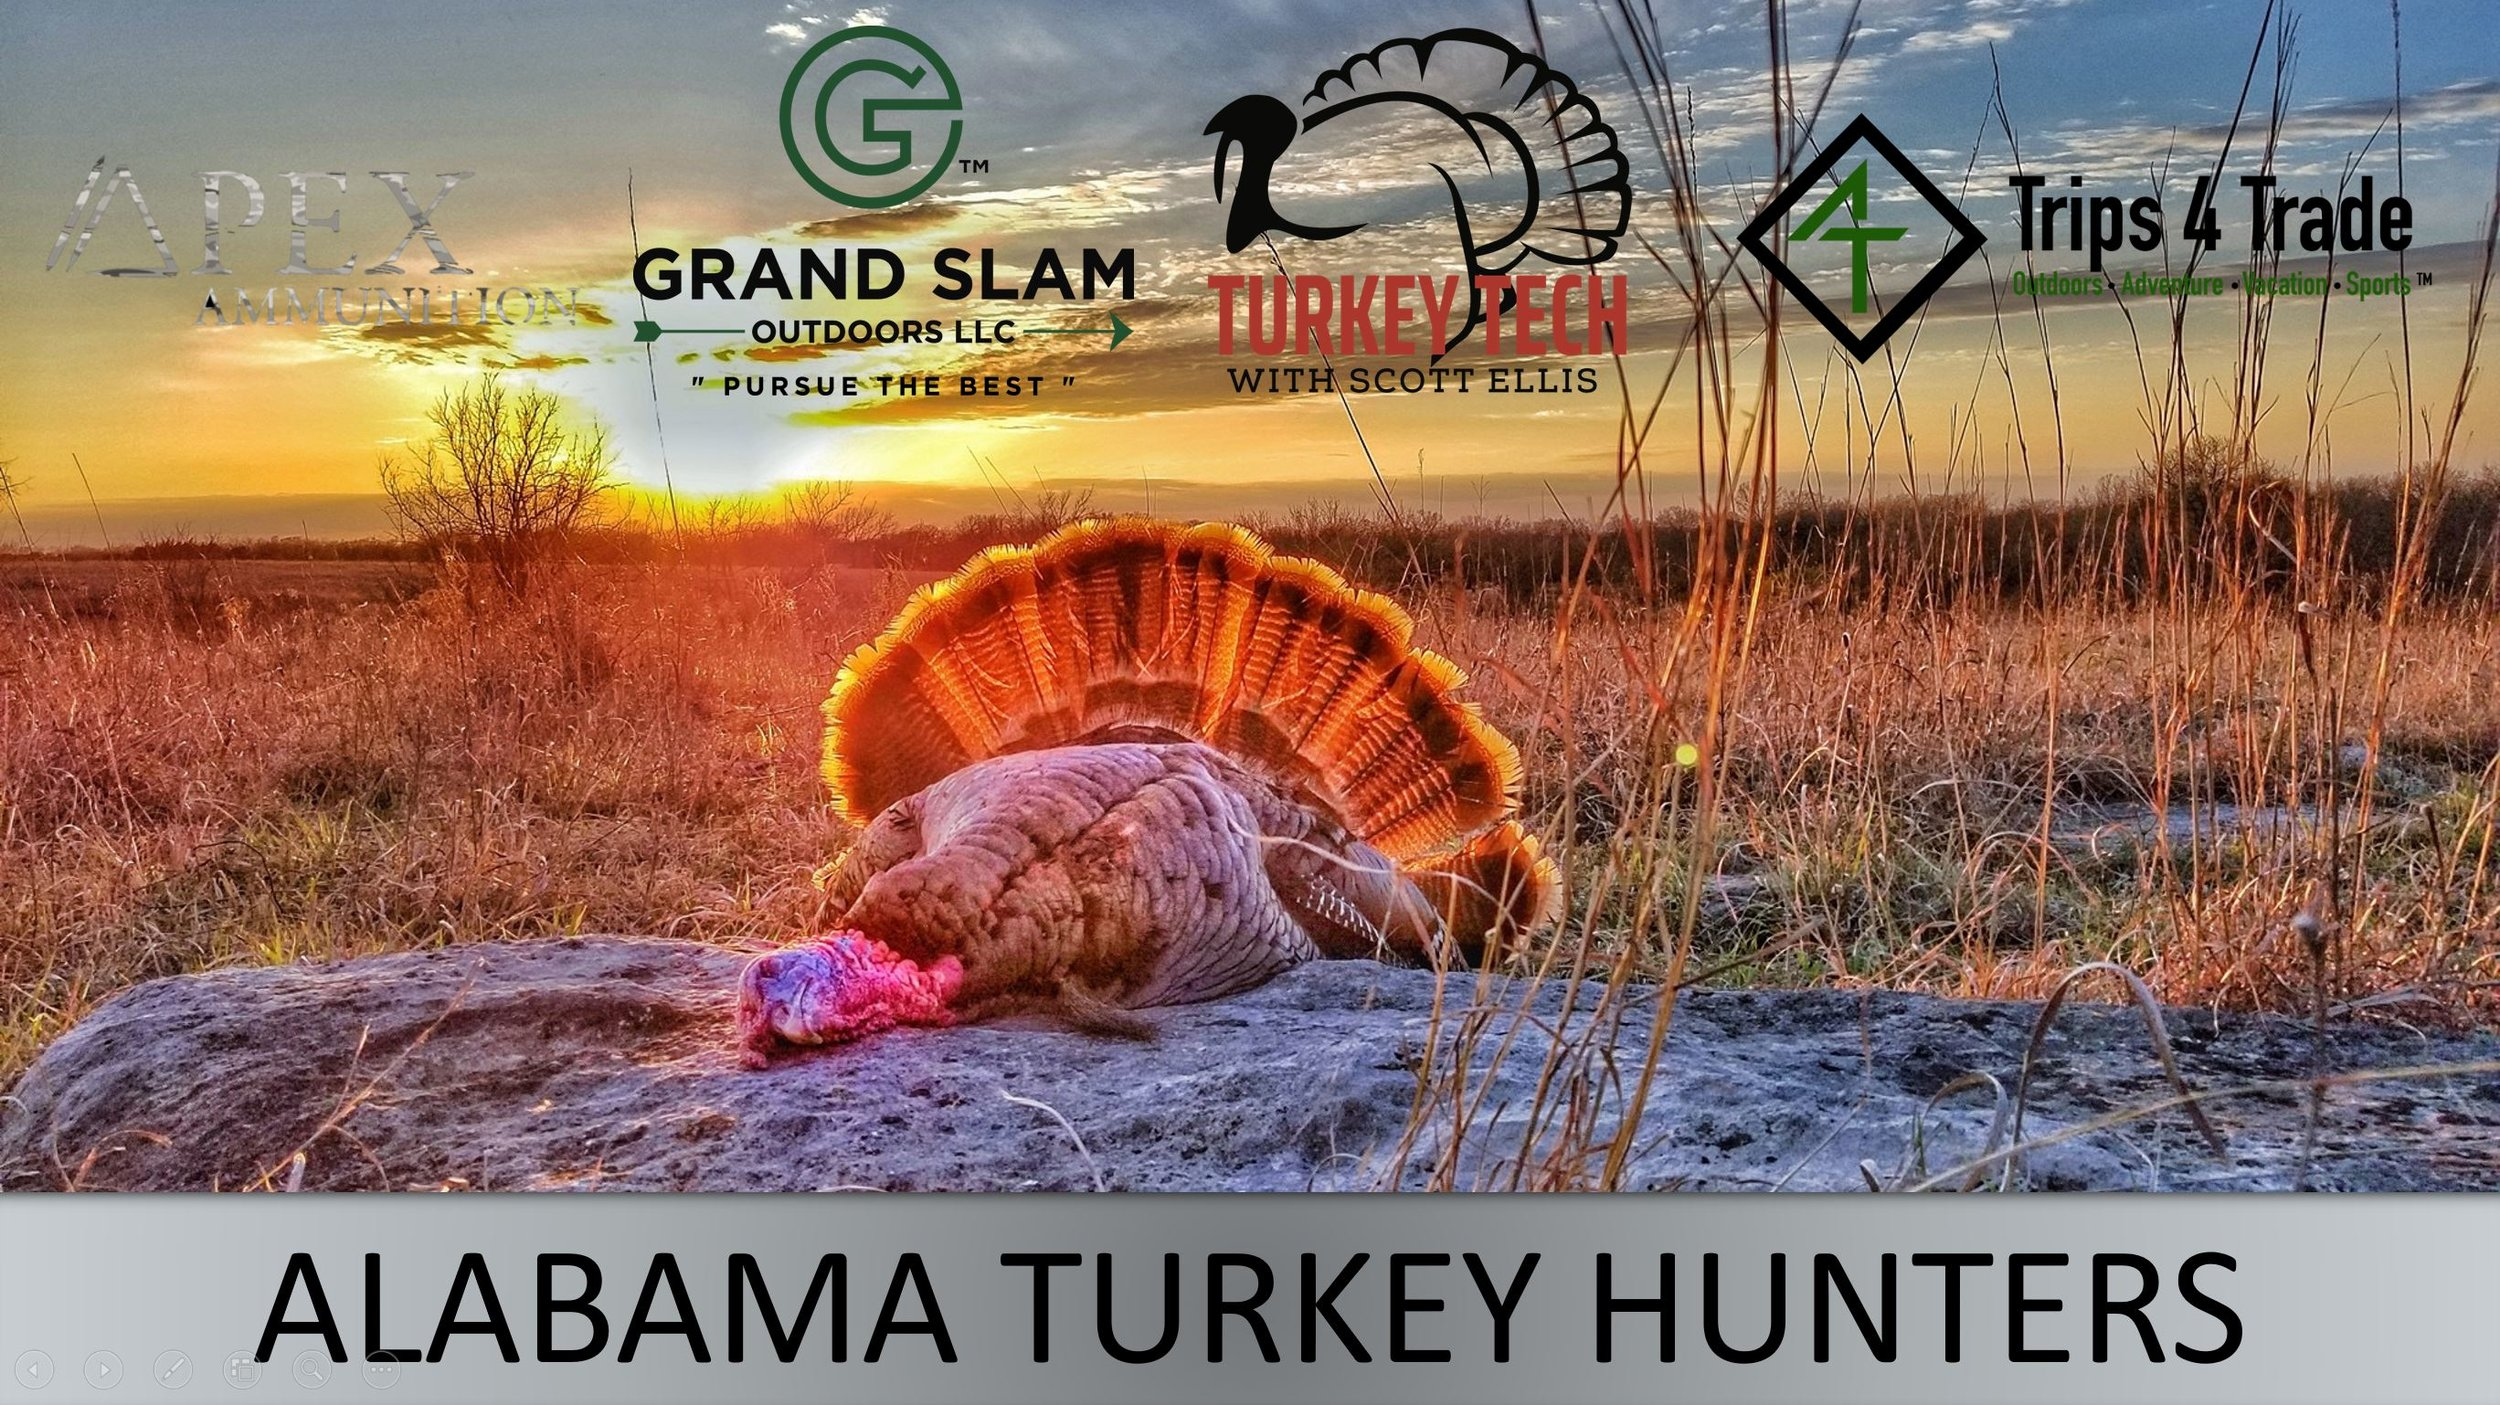 ALABAMA TURKEY HUNTERS   This is a Facebook group that was created in hopes of linking turkey hunters in the state an surrounding states. Also, to be able to help one another by passing on the legacy of turkey hunting.